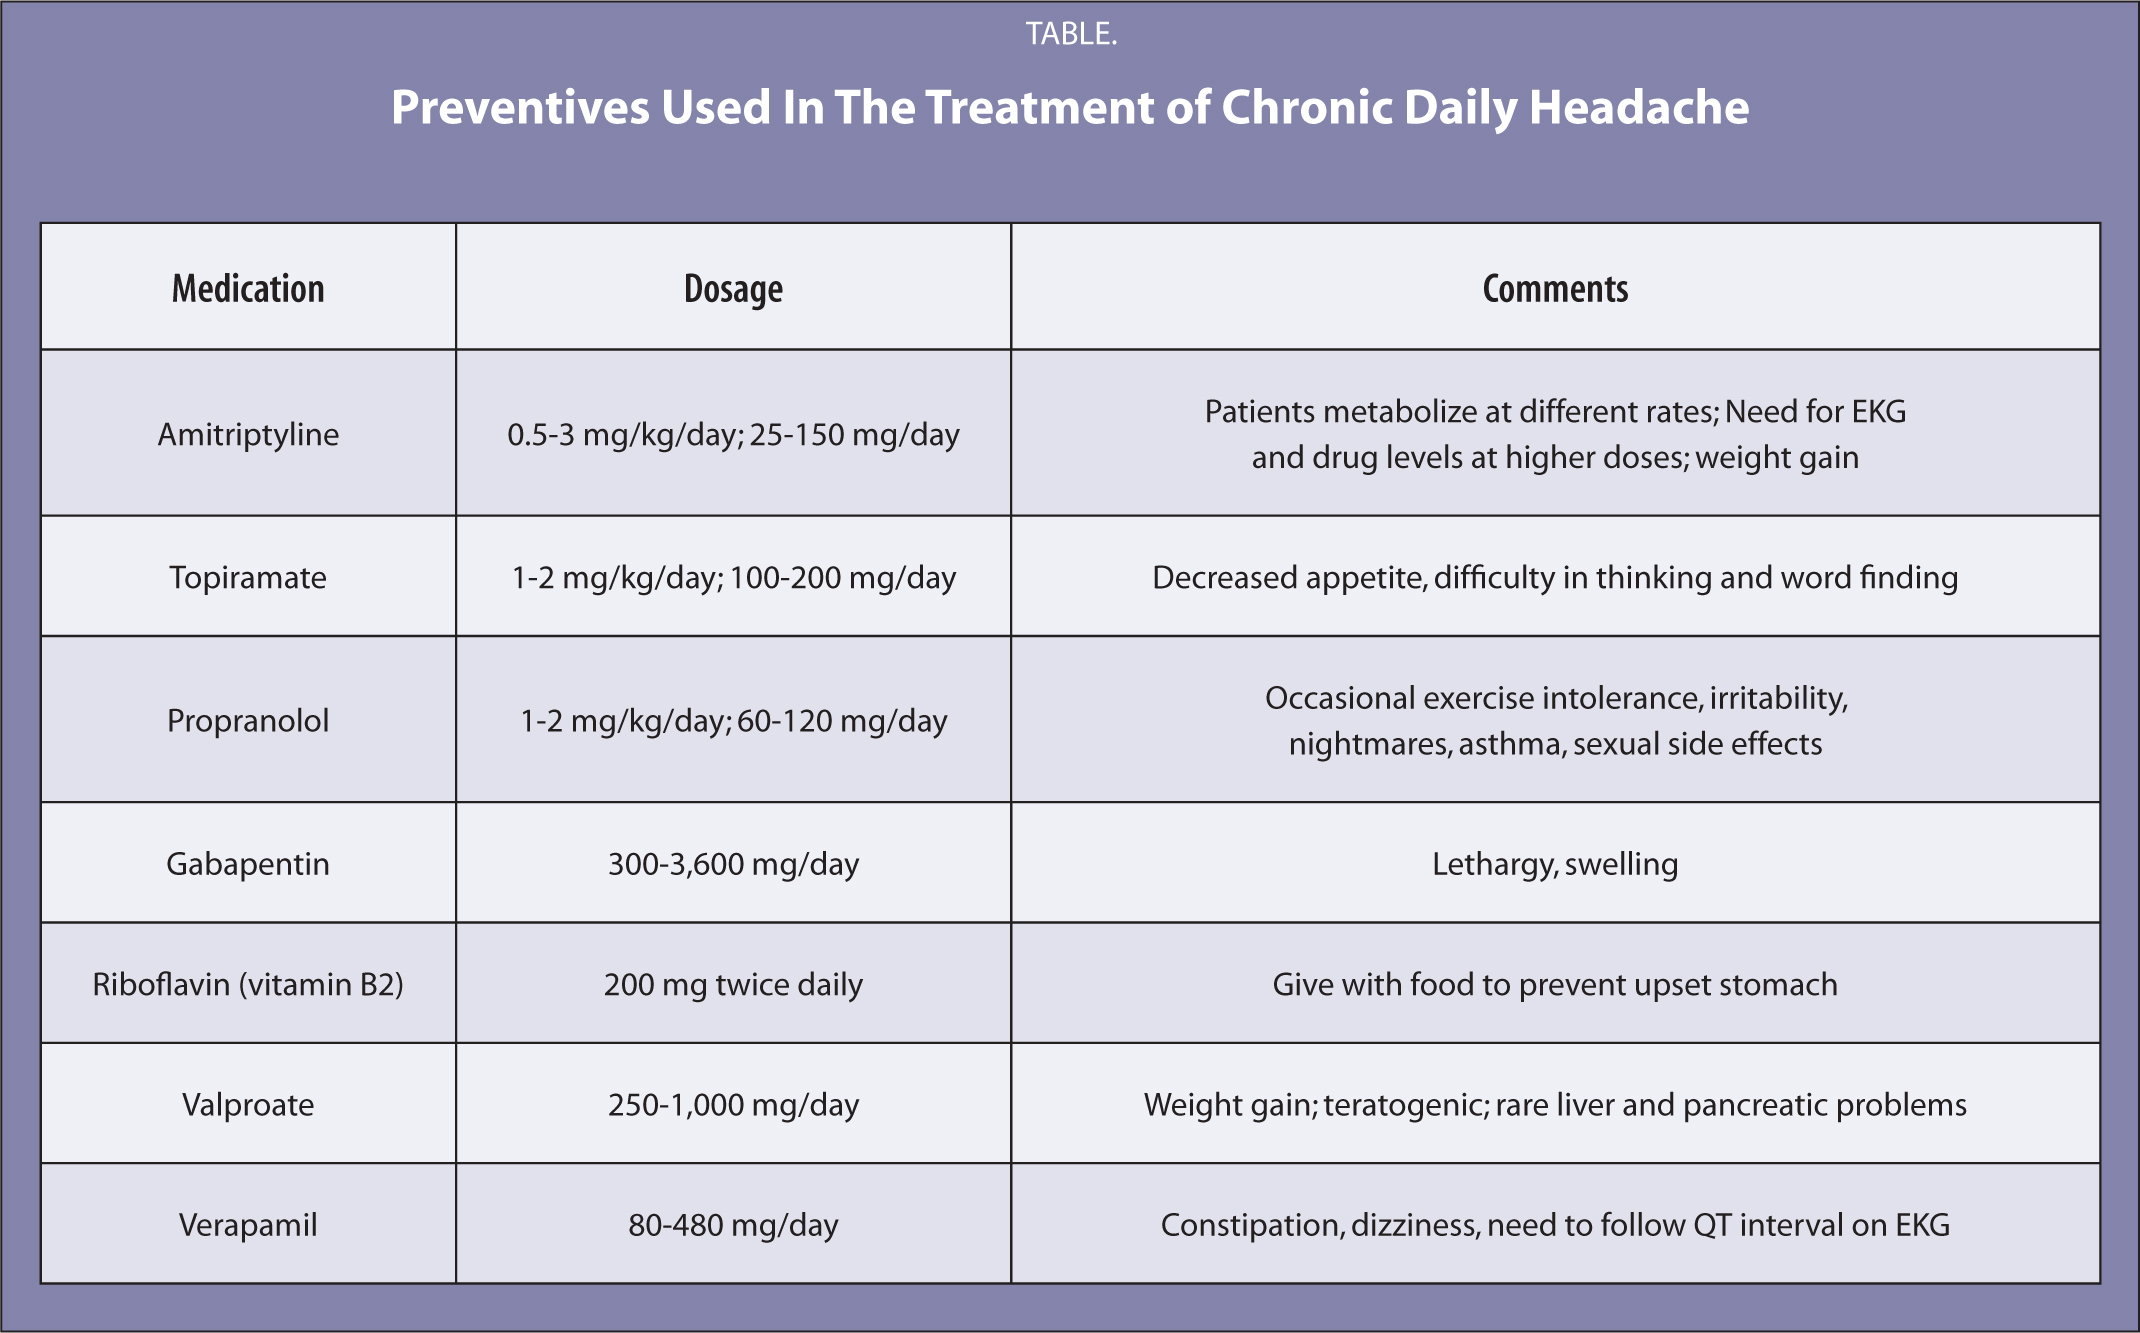 Preventives Used in the Treatment of Chronic Daily Headache